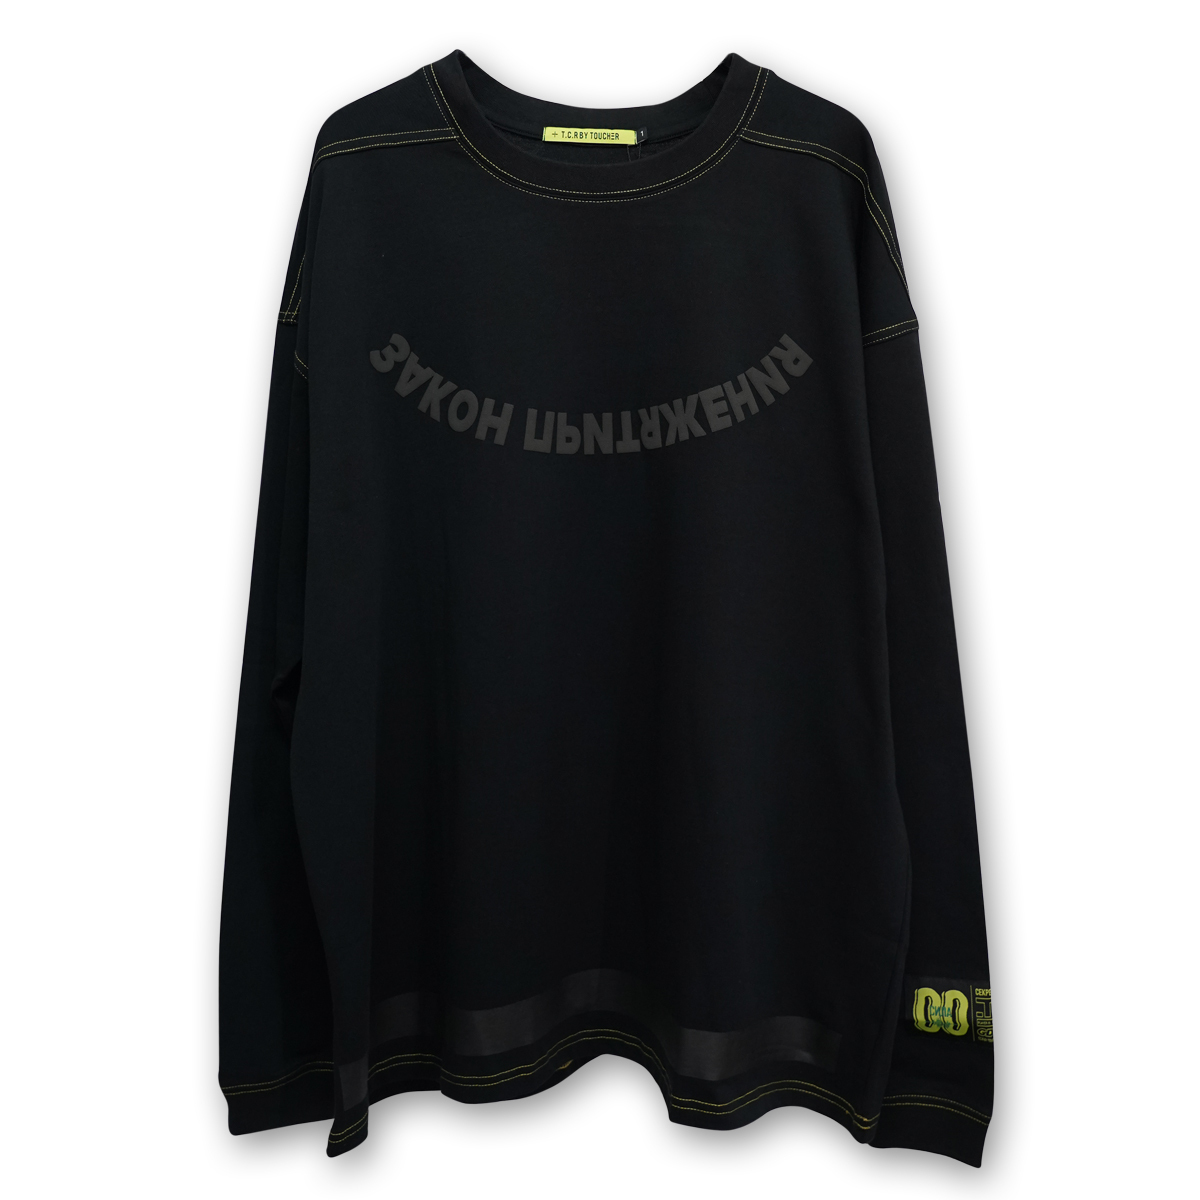 OVERSIZED ATTRACTION L/S TEE - BLACK/YELLOW